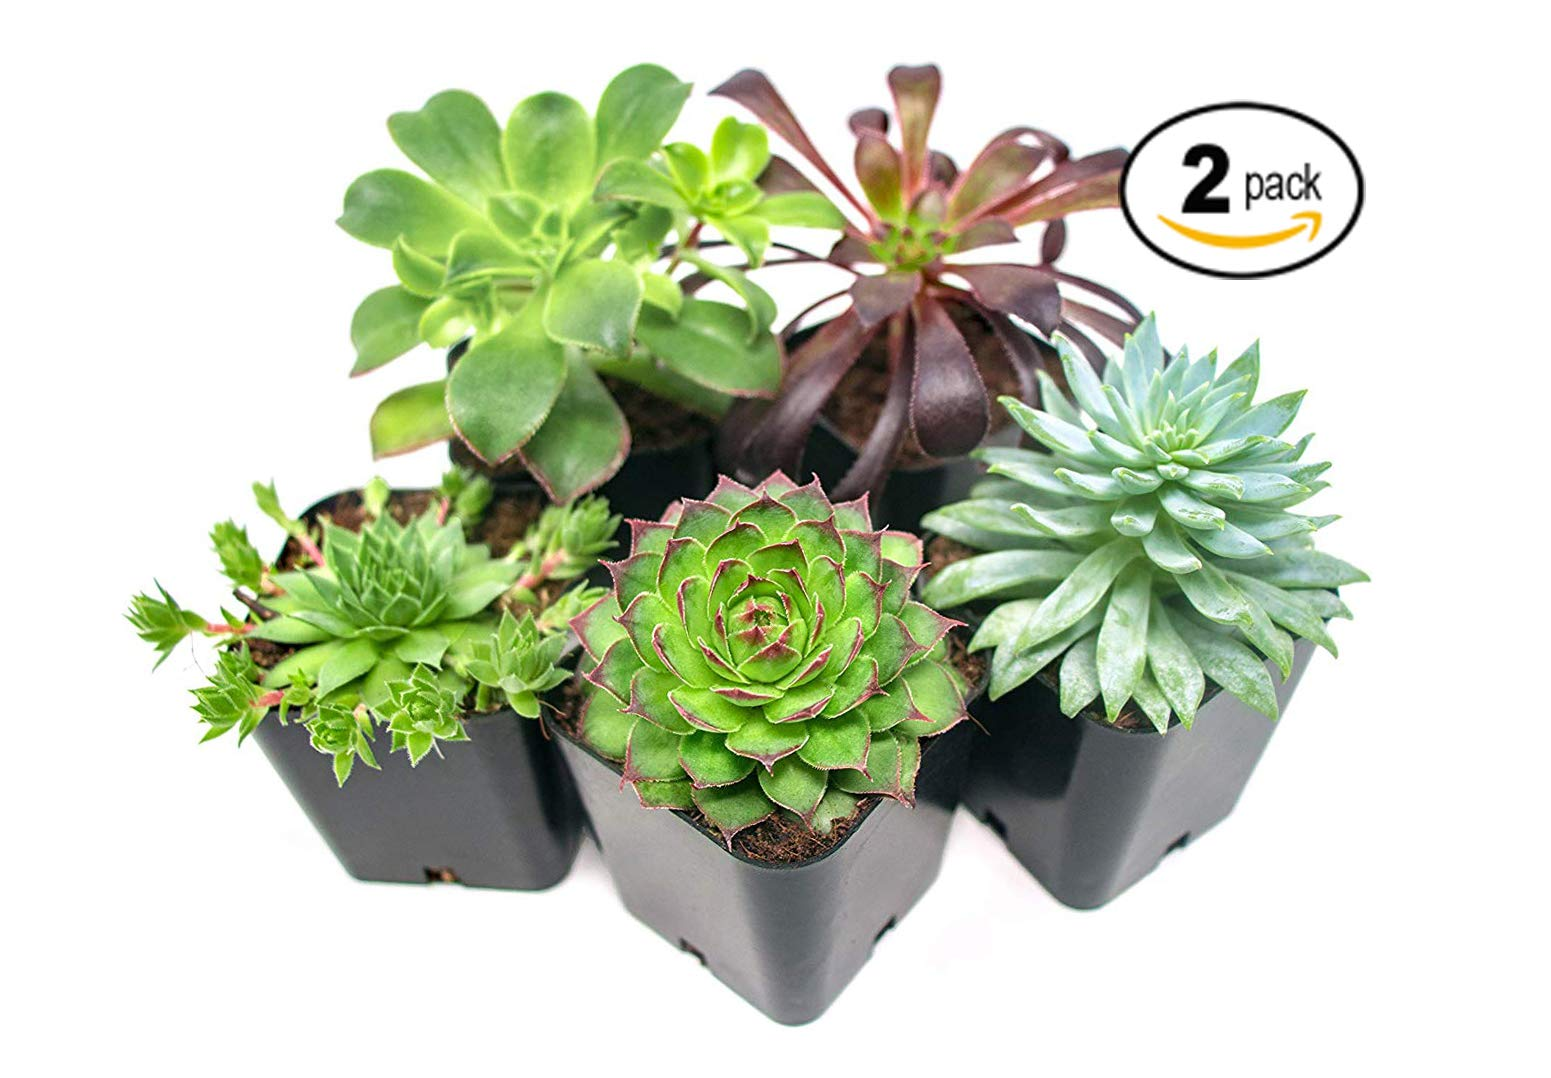 Succulent Plants (10 Pack), Fully Rooted in Planter Pots with Soil - Real Live Potted Succulents/Unique Indoor Cactus Decor by Plants for Pets